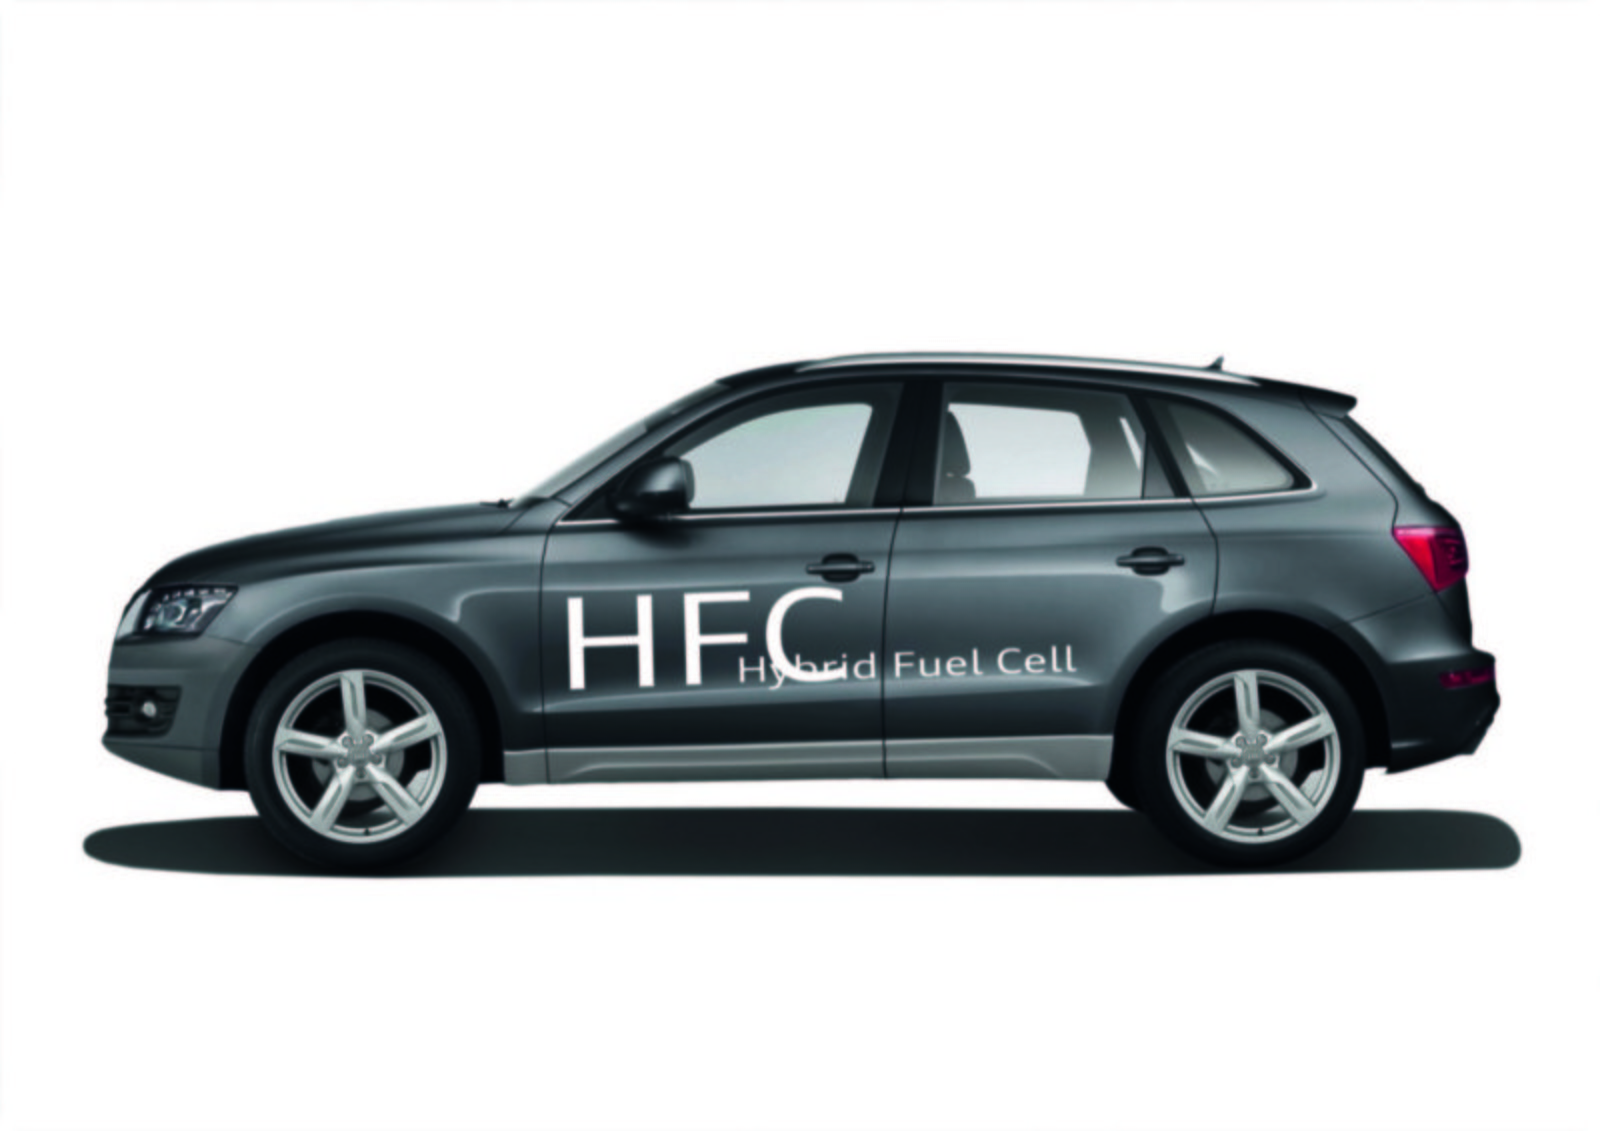 2011 audi q5 hfc hybrid fuel cell review top speed. Black Bedroom Furniture Sets. Home Design Ideas